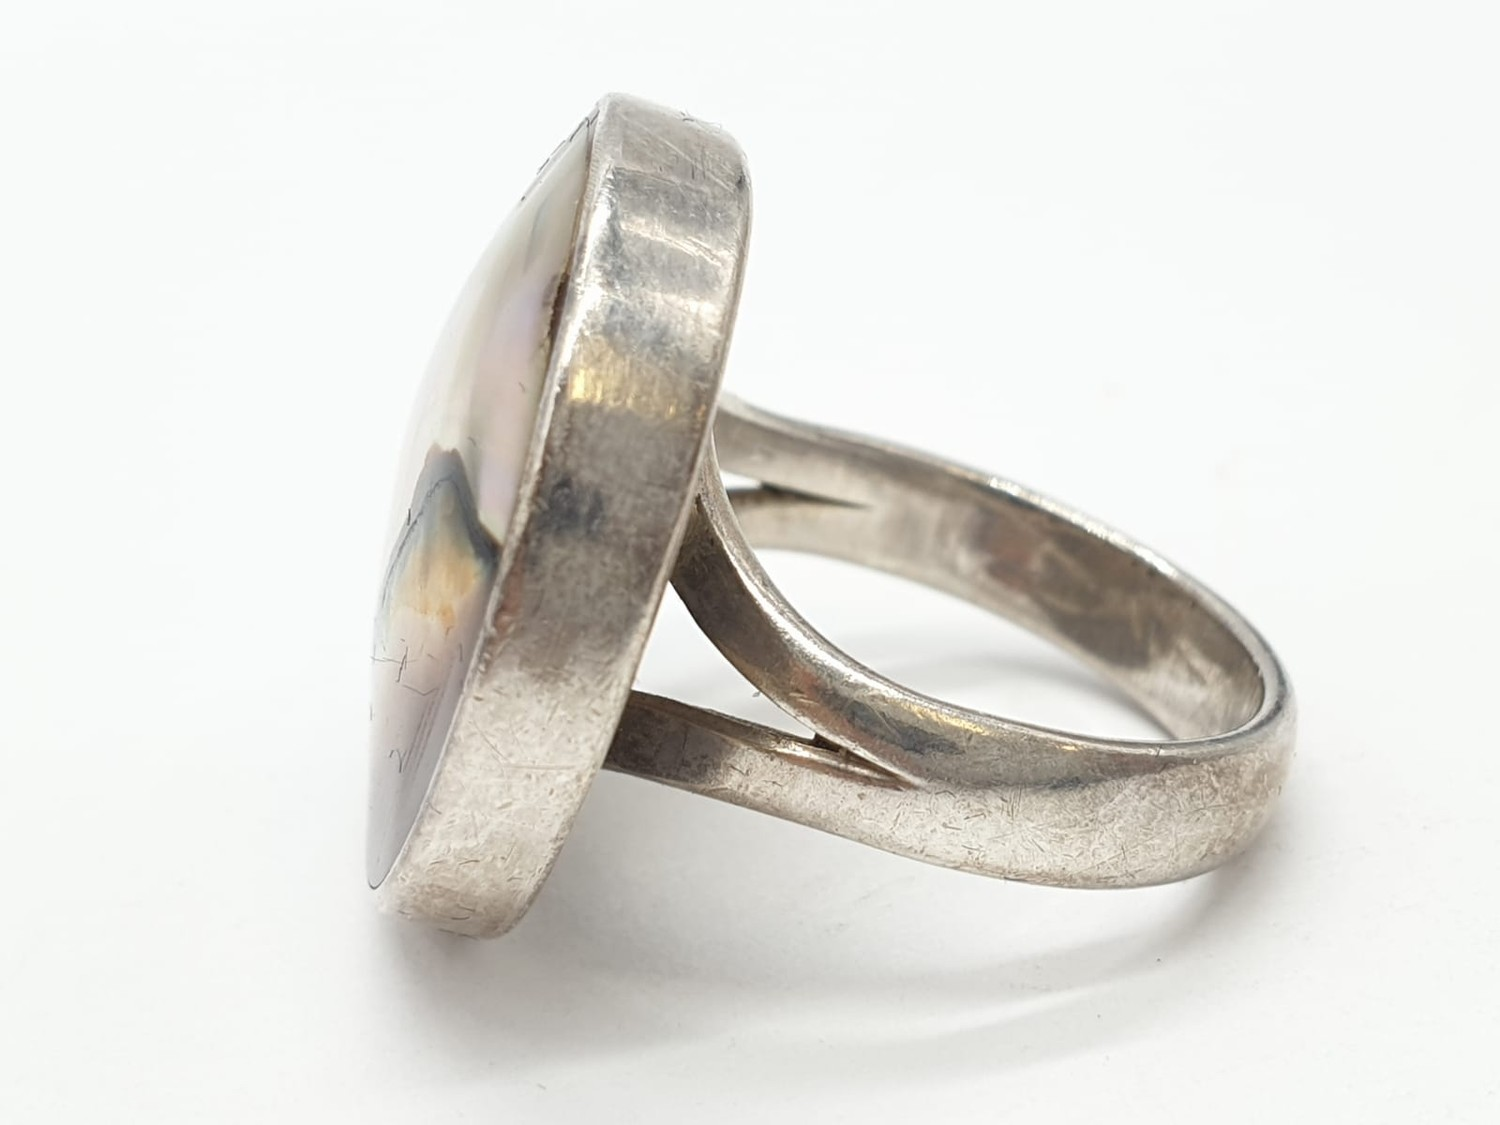 Silver ring having large circular Agate stone to top. Size L. - Image 3 of 6